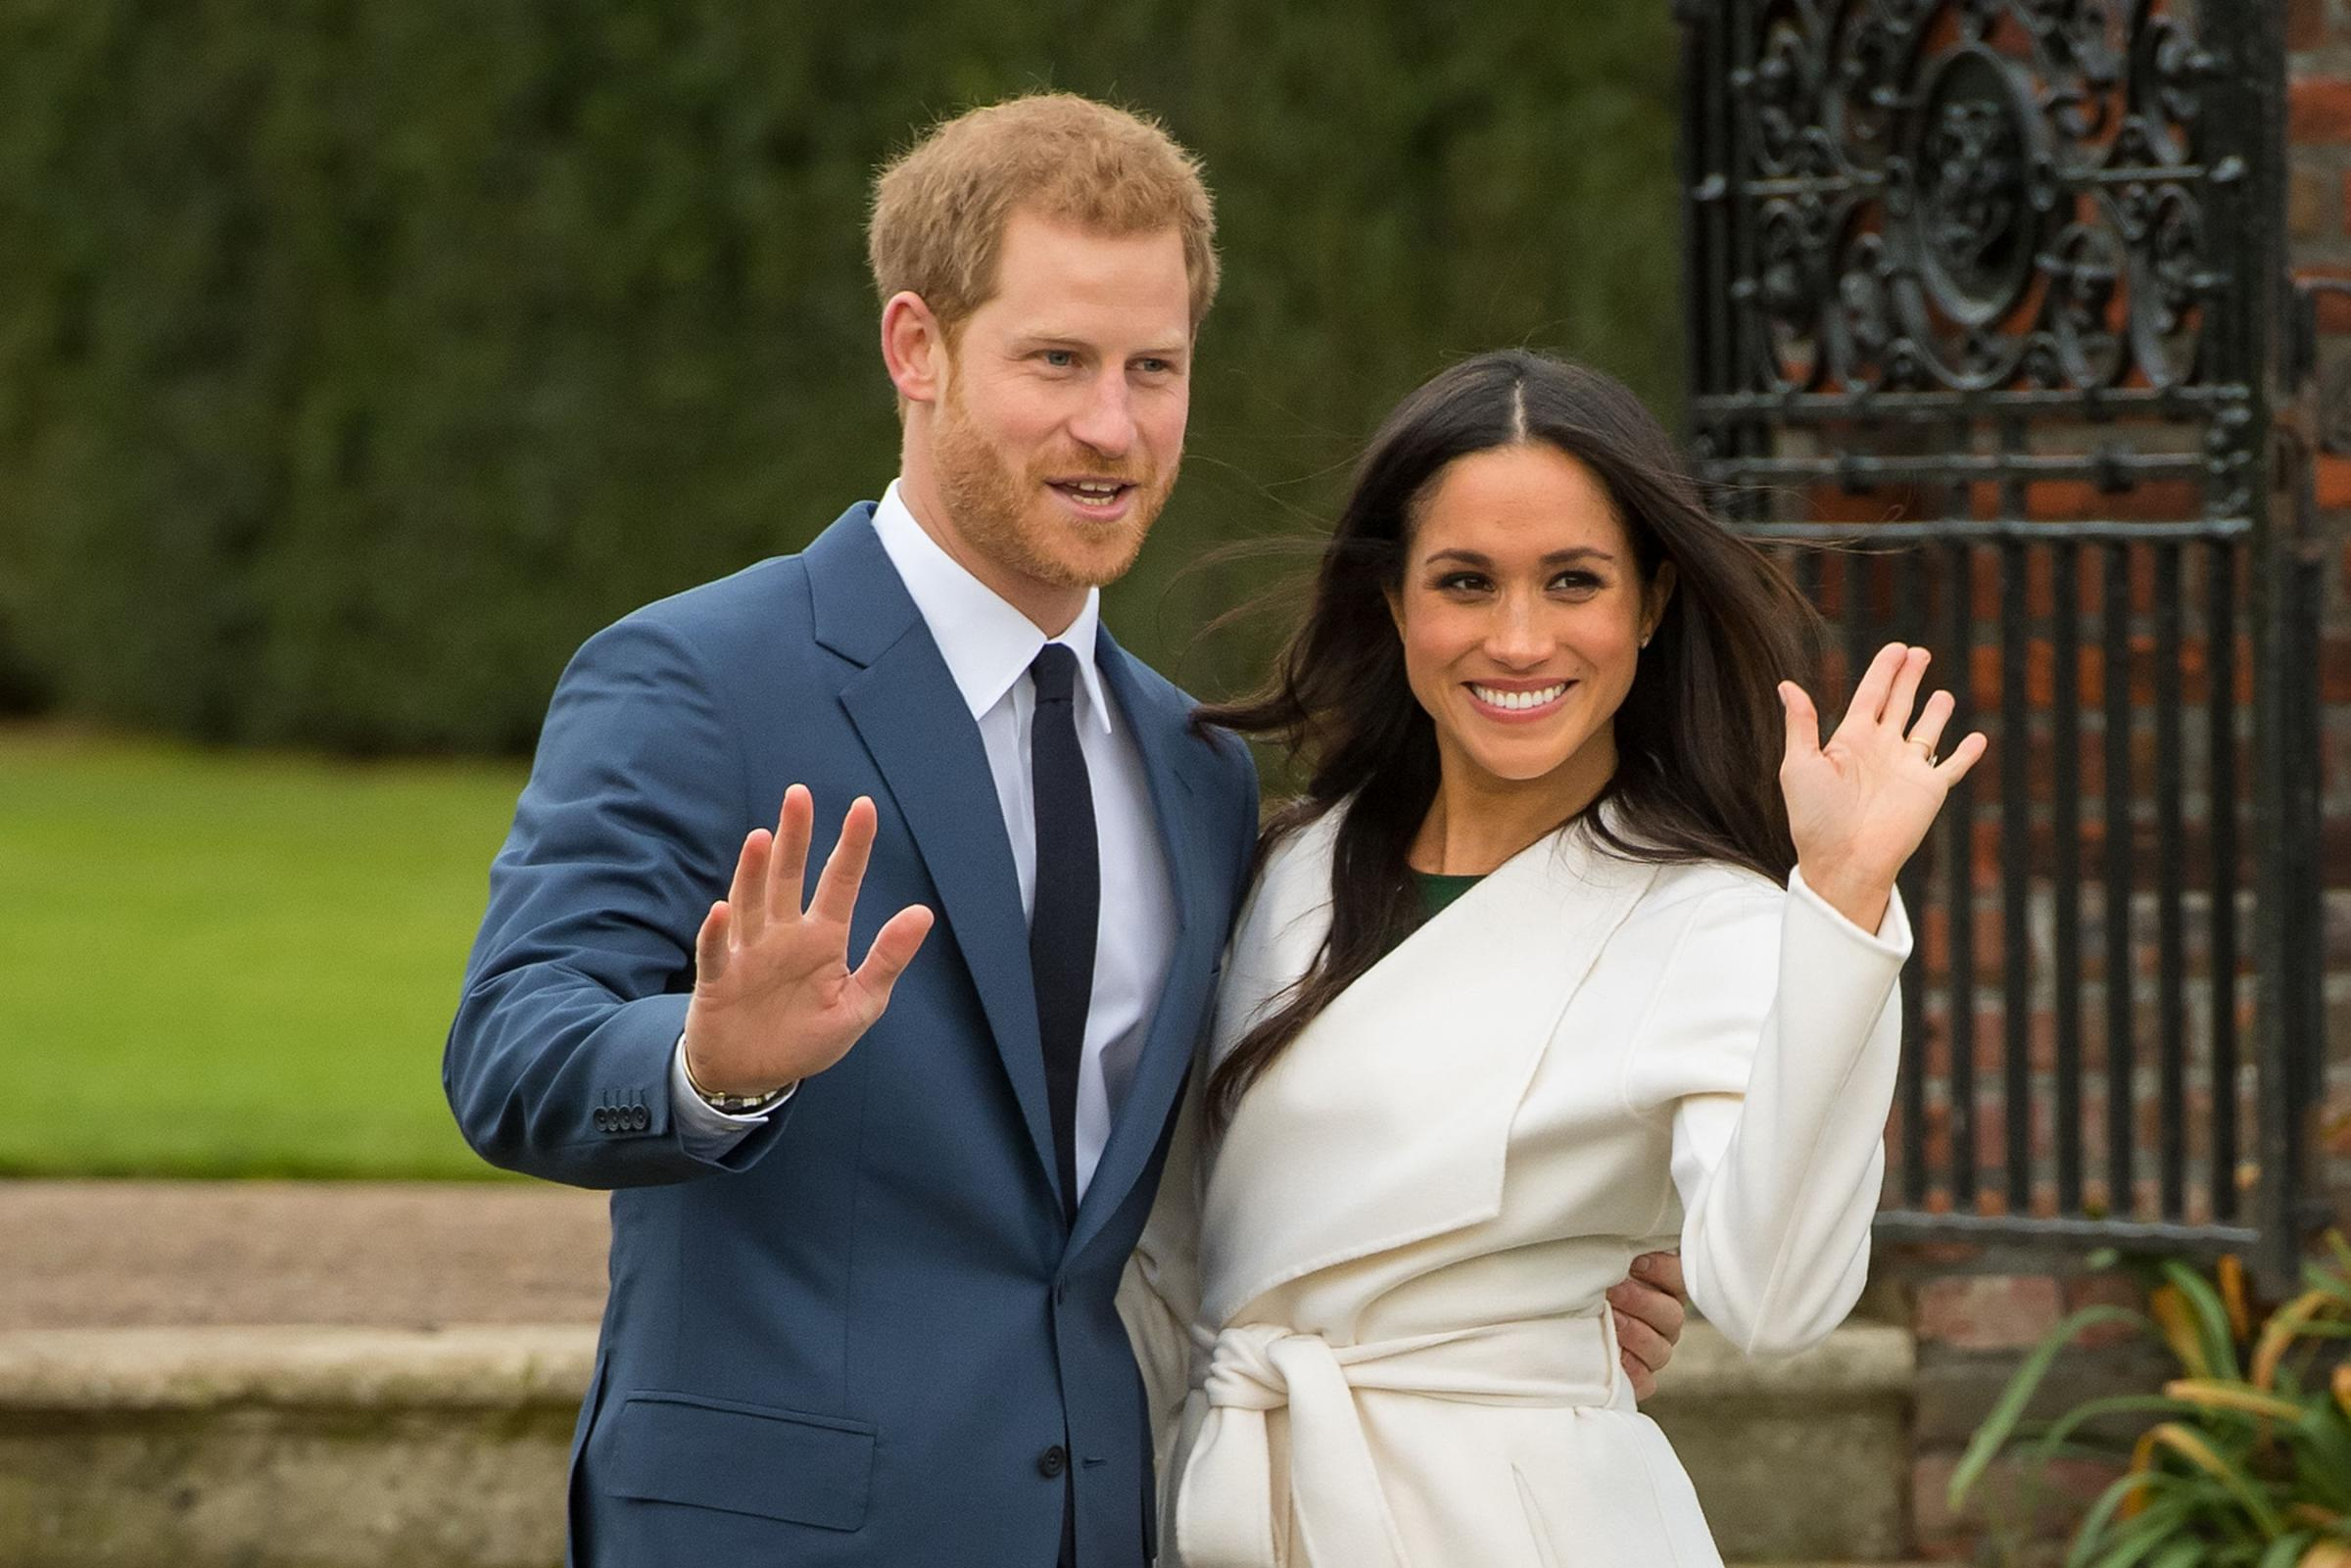 Thousands of members of the public invited to Royal Wedding